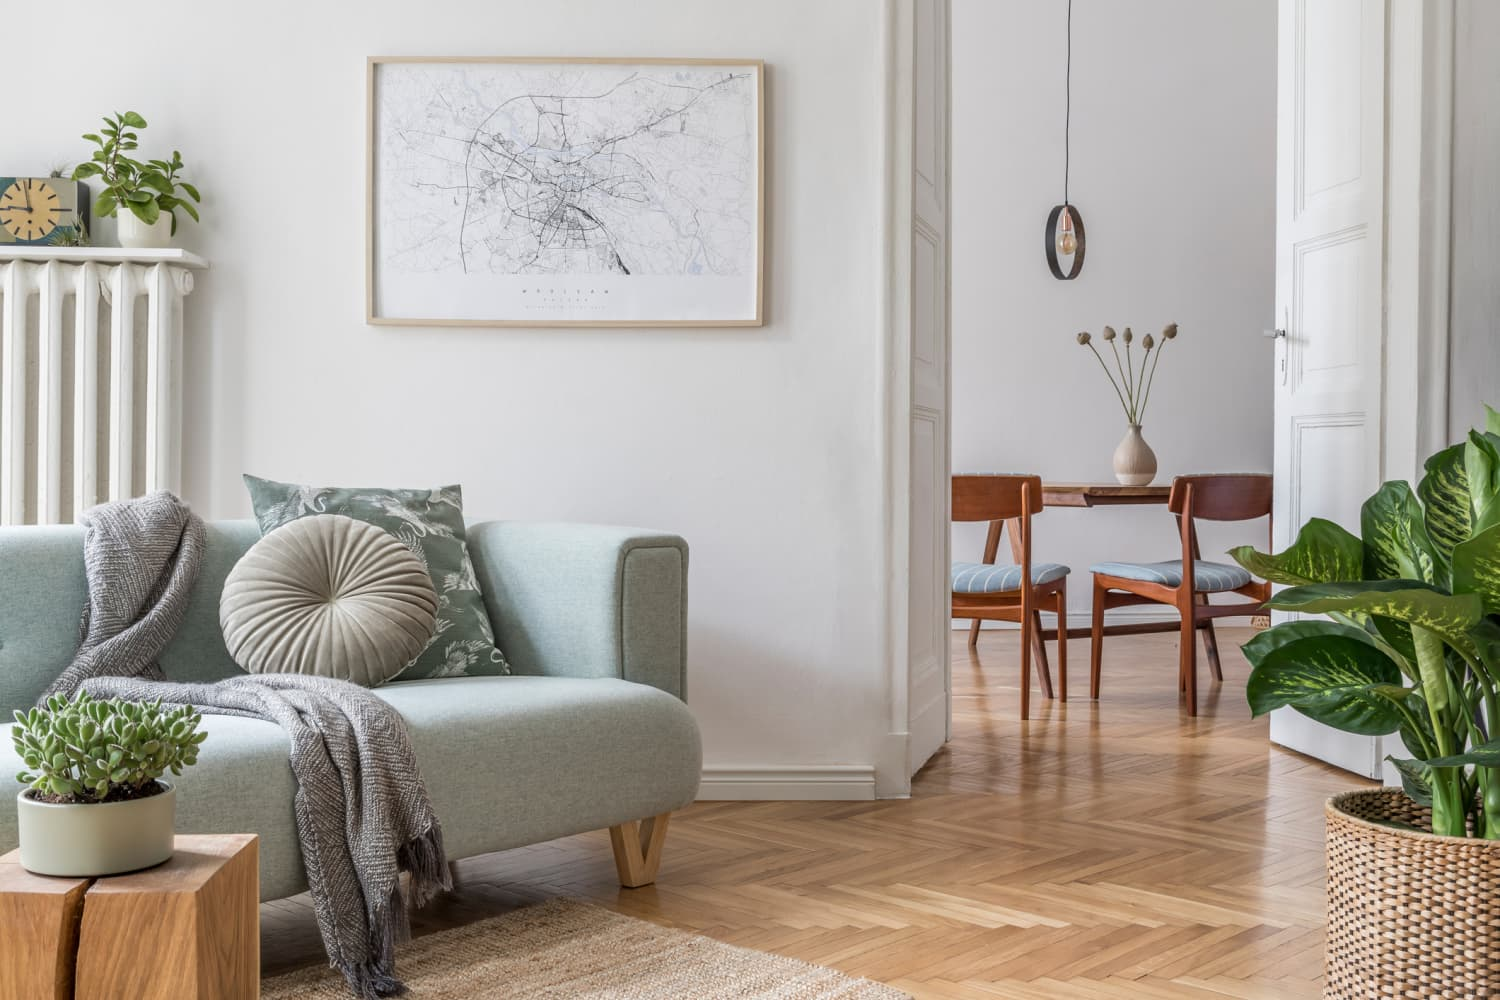 This Color Will Be Huge for Home Decor in 2021, According to Etsy